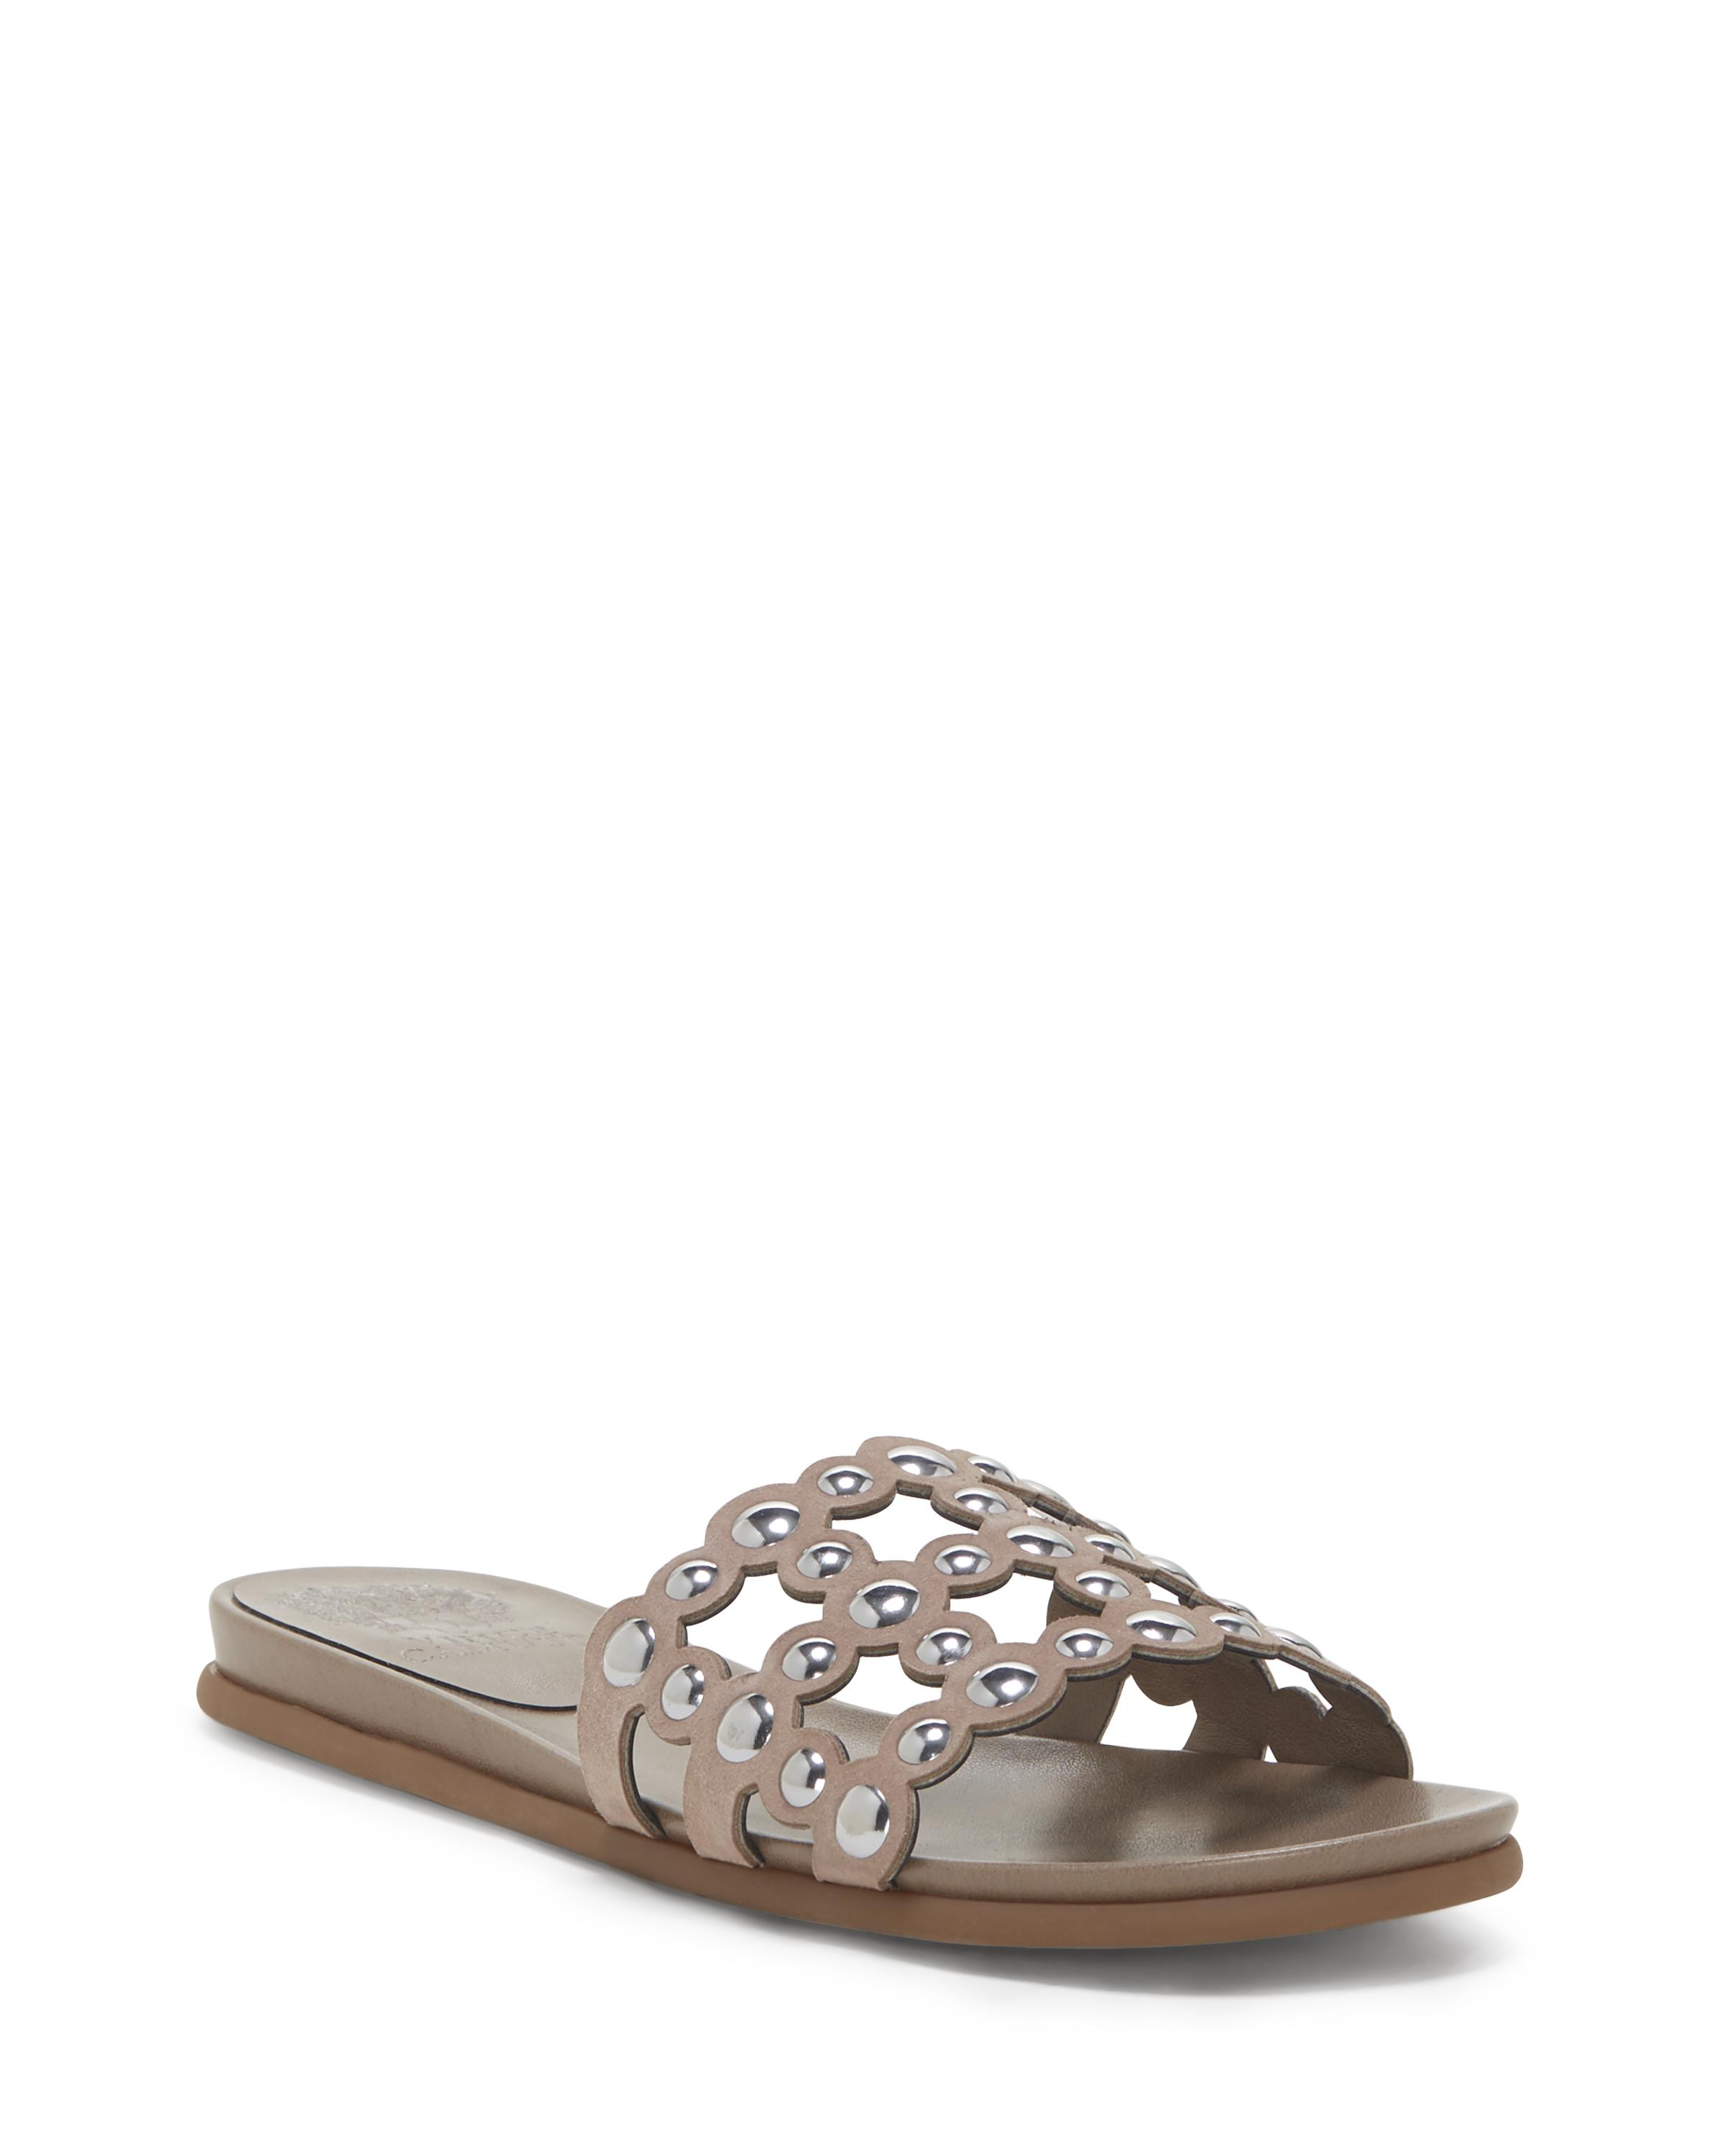 Vince Camuto Women's Ellanna Studded Leather Cage Slide Sandals JnnpM